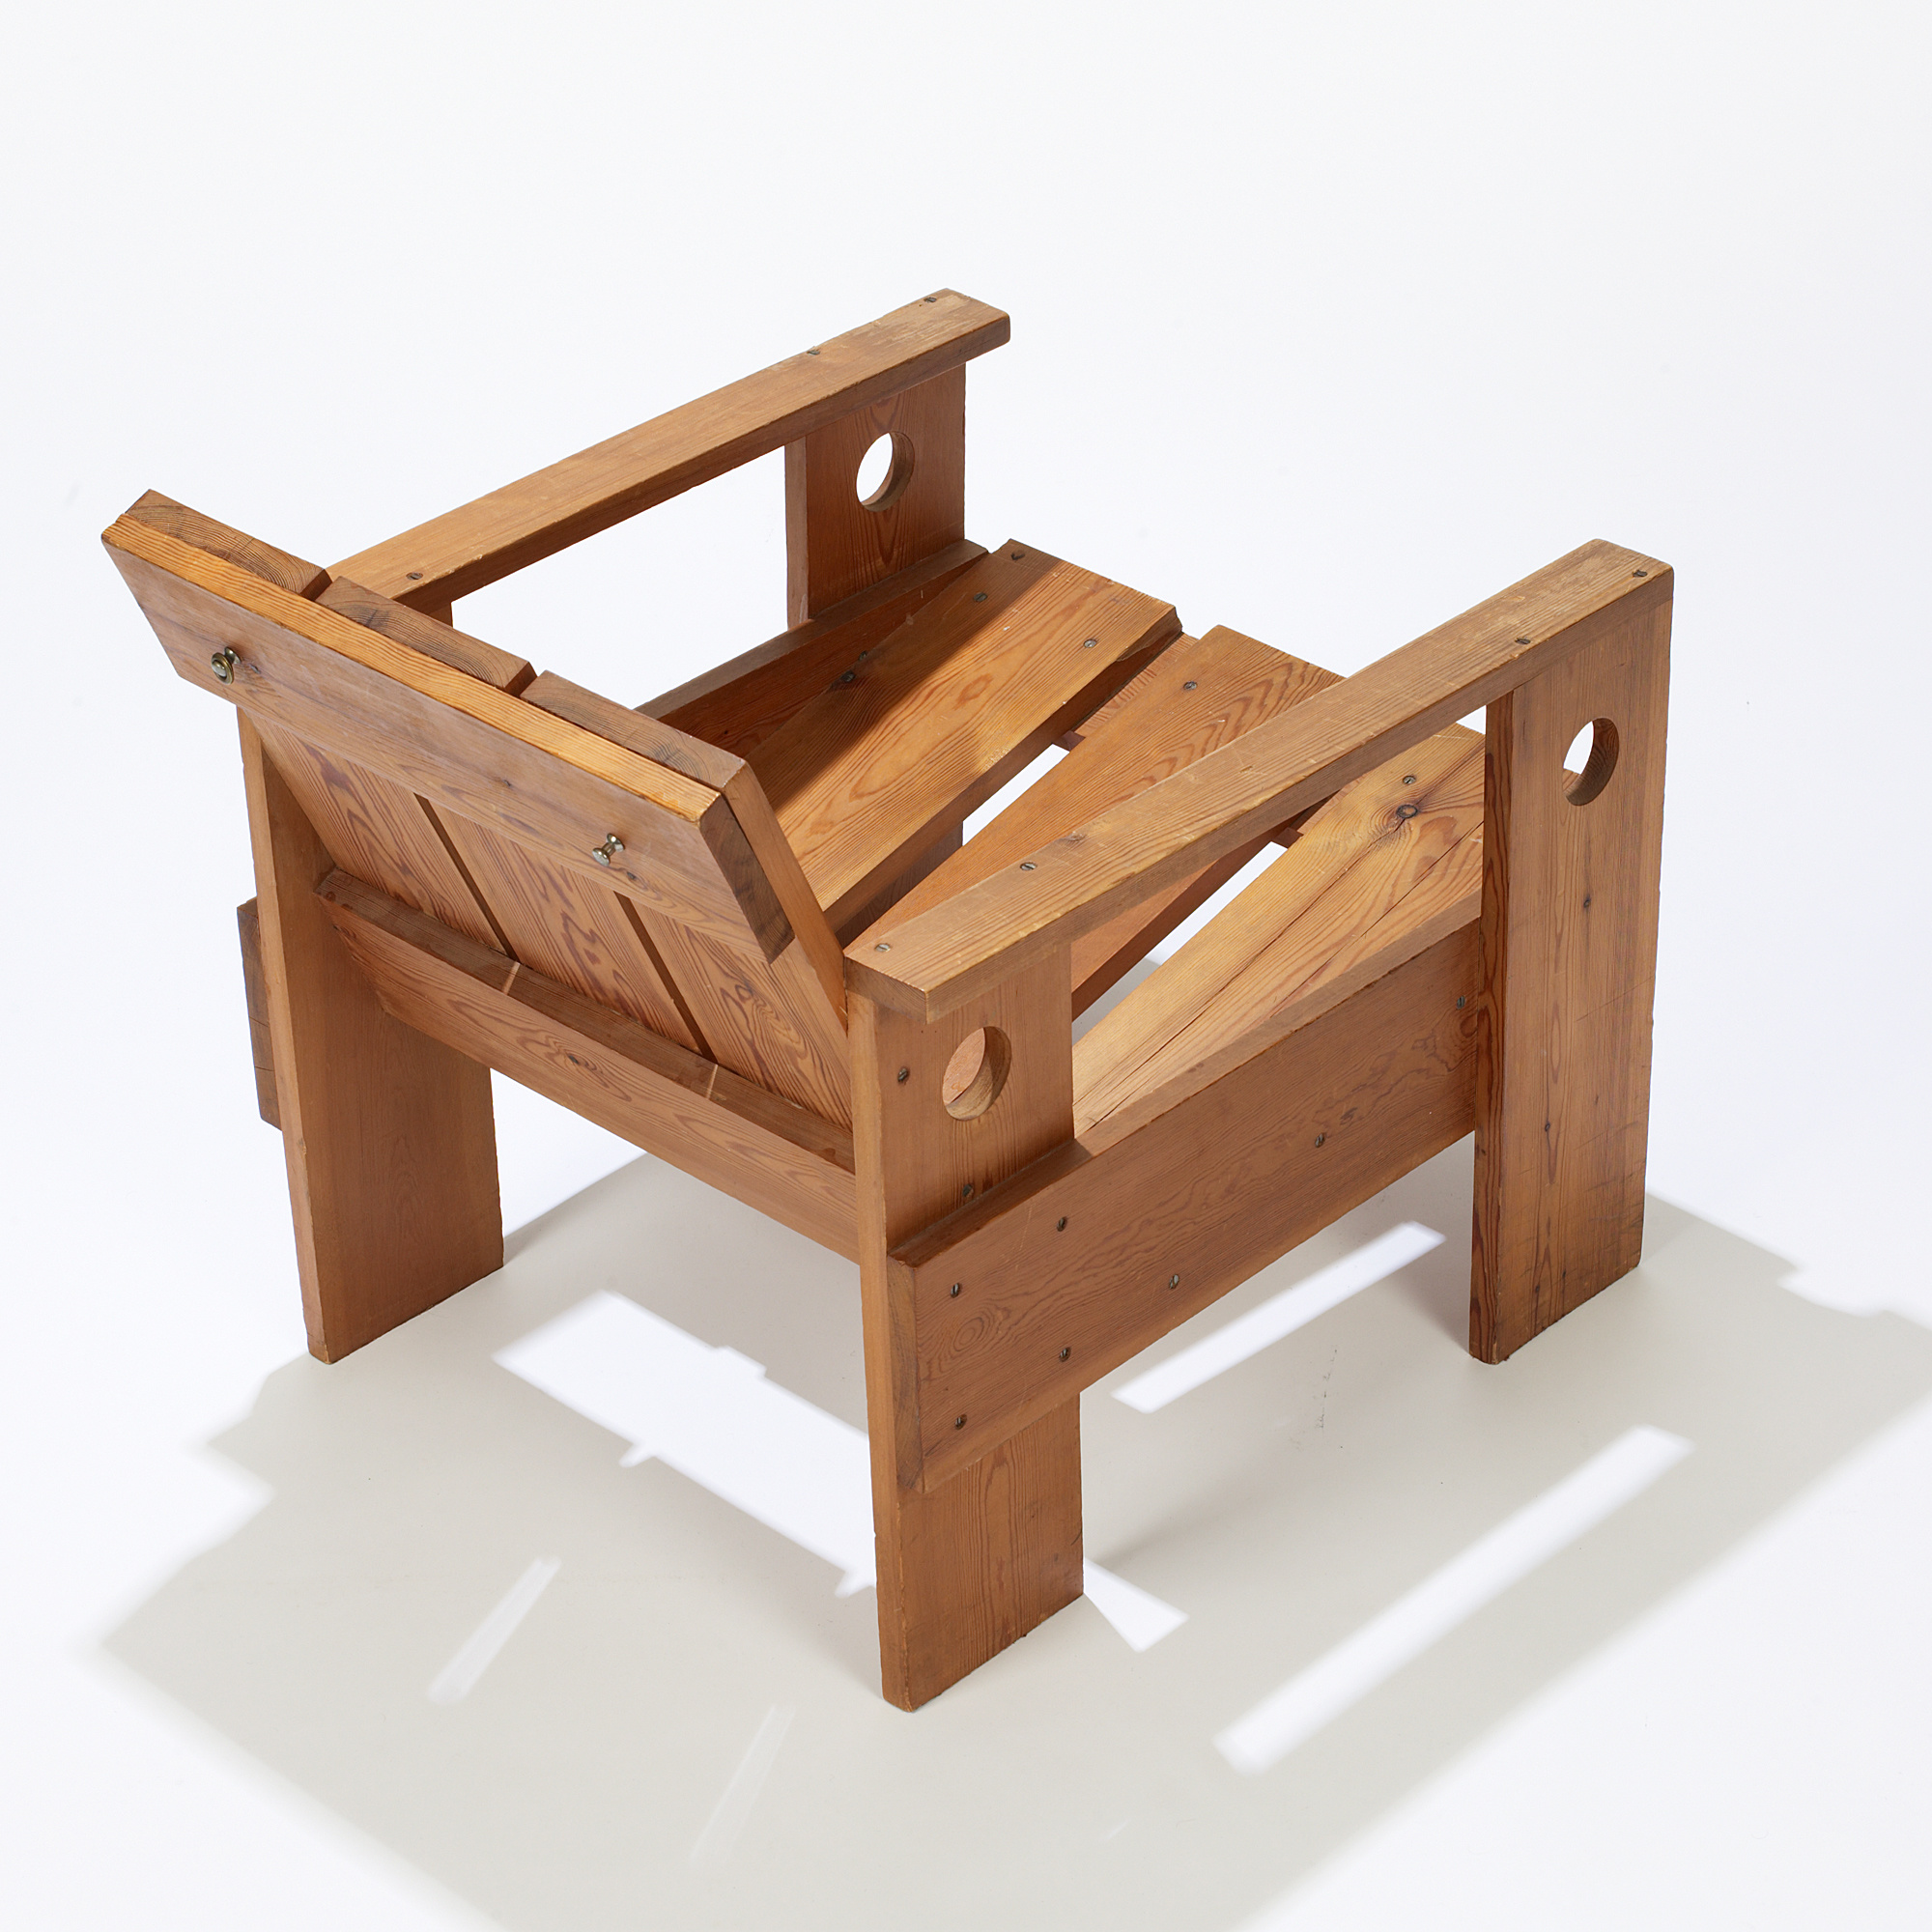 Cool 255 Gerrit Rietveld Crate Chair Important Design Day 1 Download Free Architecture Designs Scobabritishbridgeorg